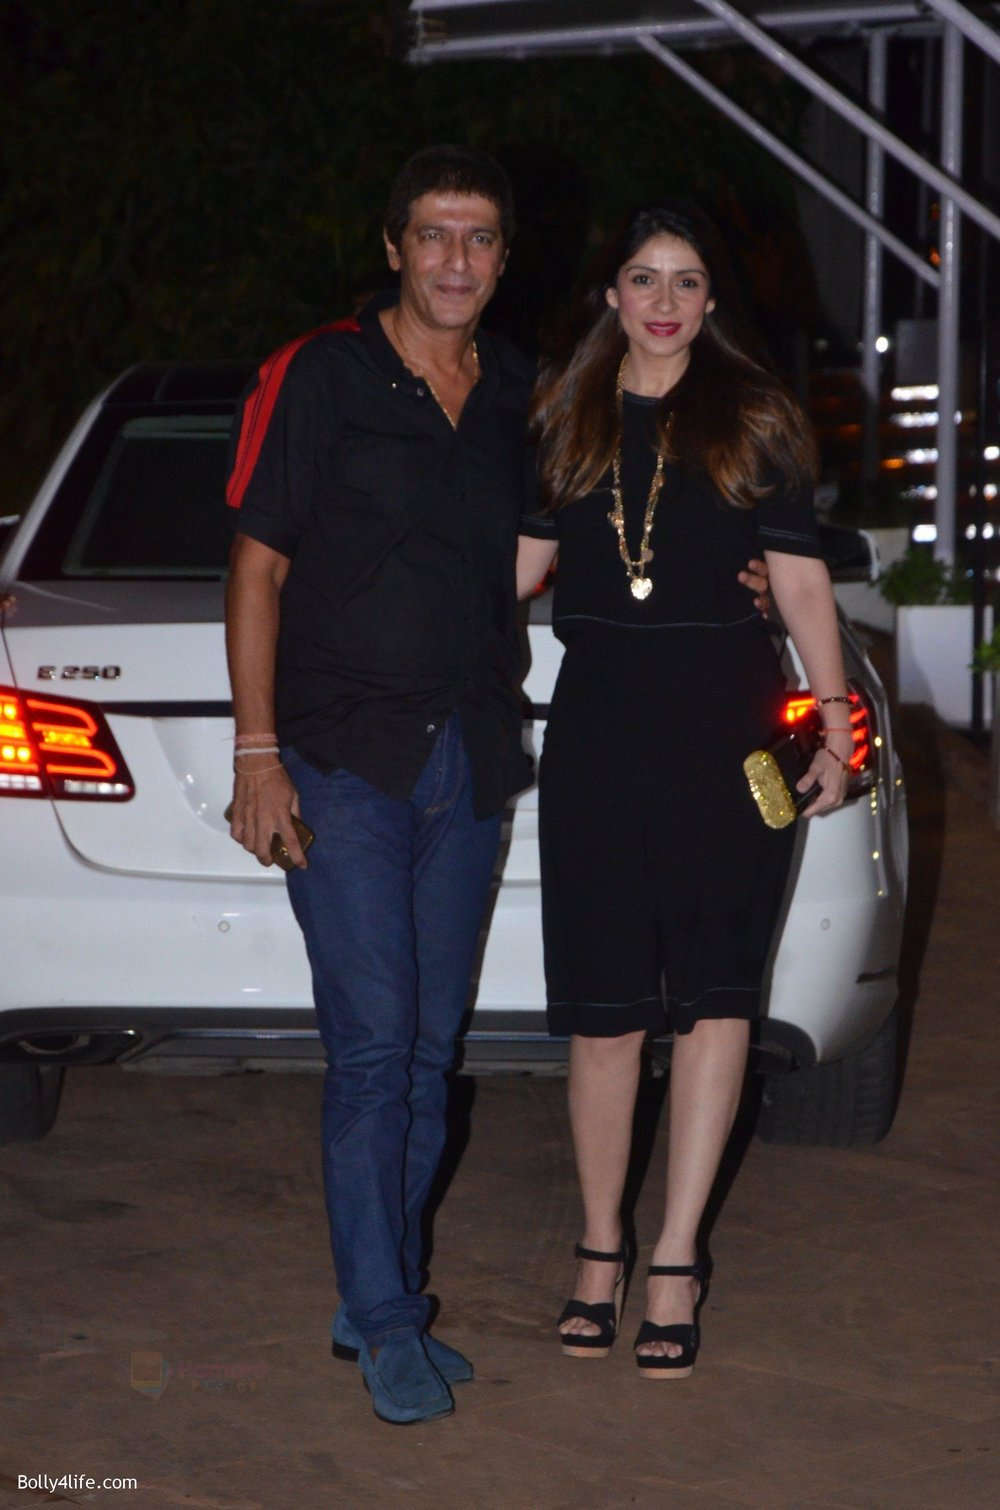 Chunky-Pandey-at-Reema-jain-bday-party-in-Amadeus-NCPA-on-28th-Sept-2016-980.jpg